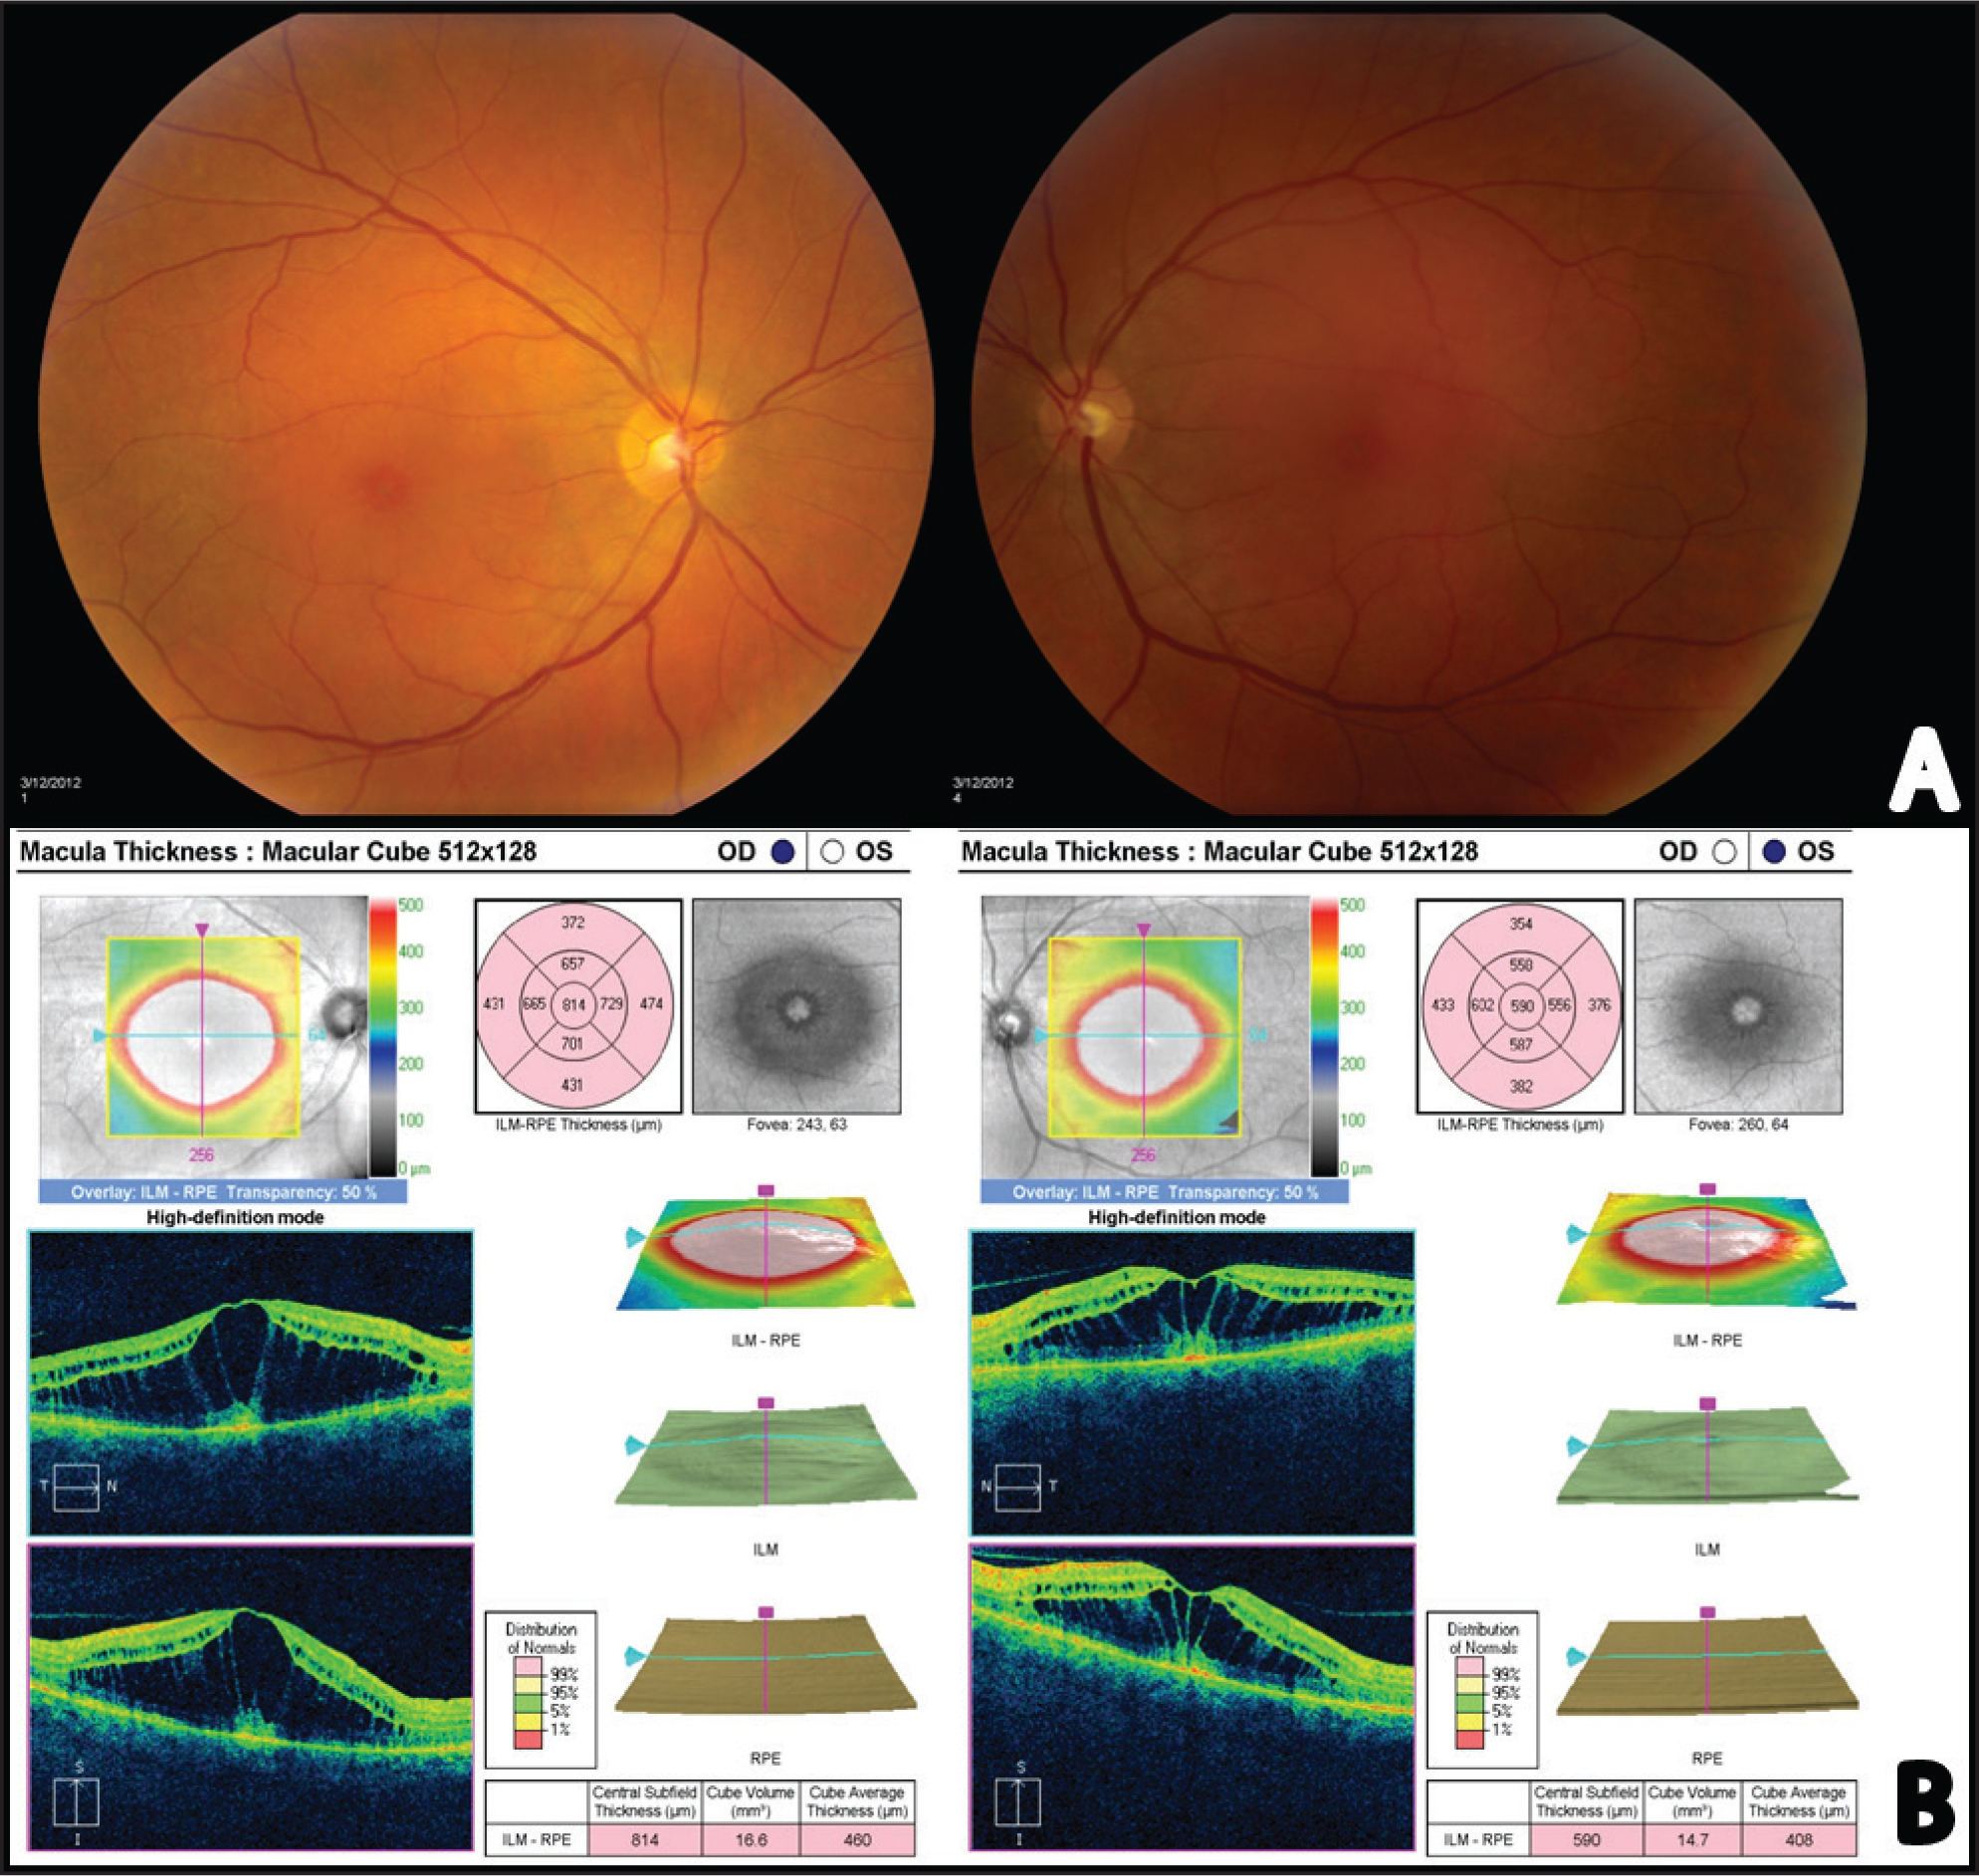 (A) Dilated fundus exam and color fundus photography demonstrate evidence of bilateral macular cystic edema. (B) Optical coherence tomography confirmed the presence of dilated cystic channels in the outer plexiform layer.